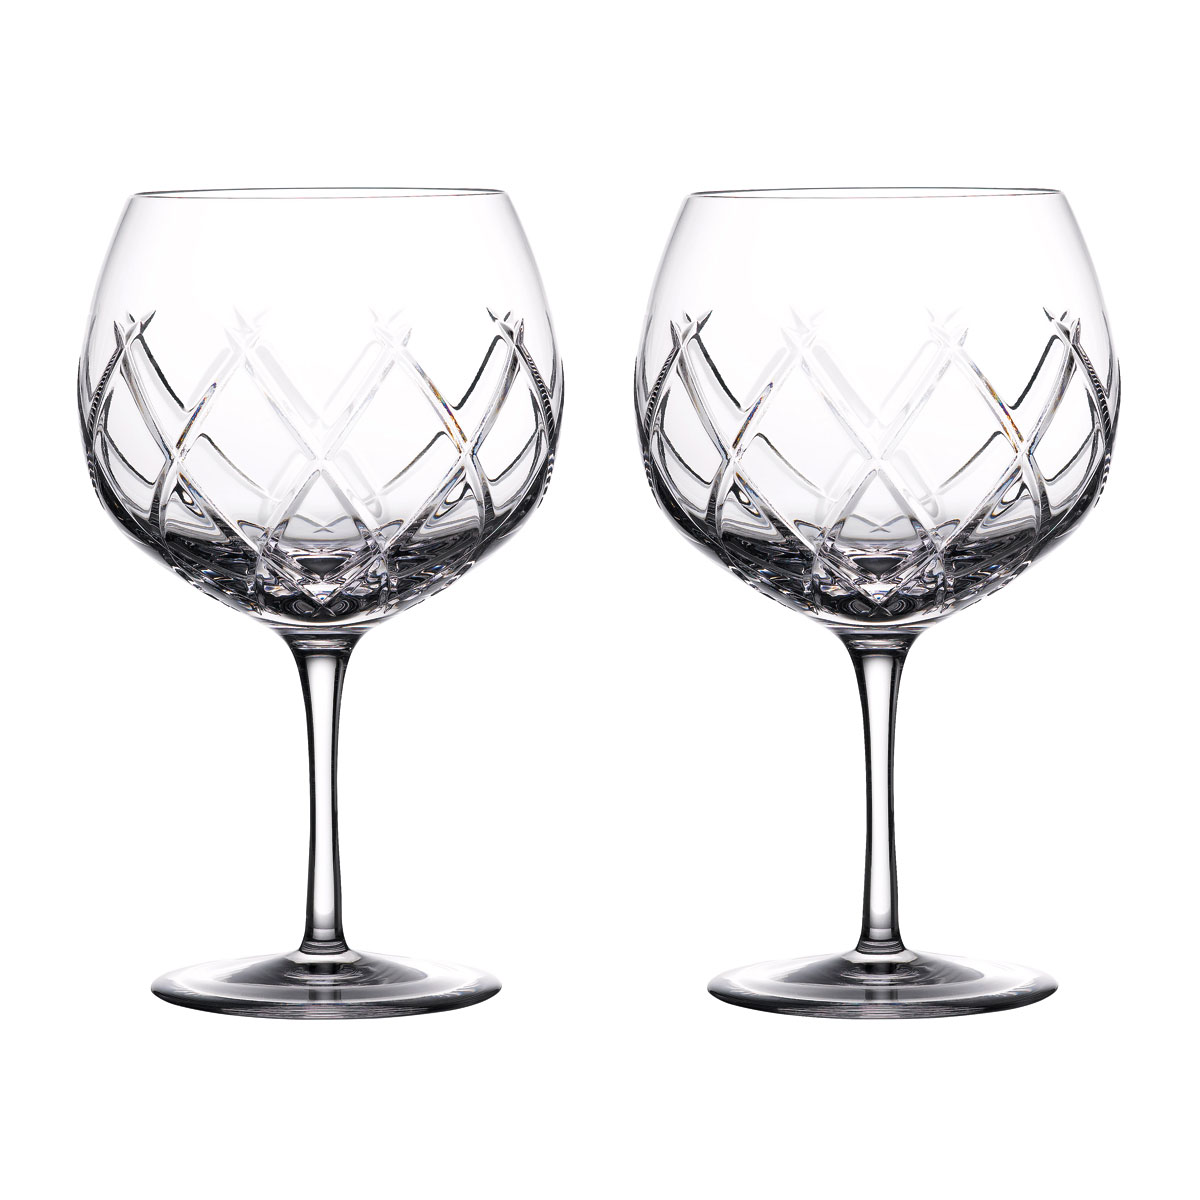 Waterford Crystal Gin Journeys Olann Balloon Glasses, Pair